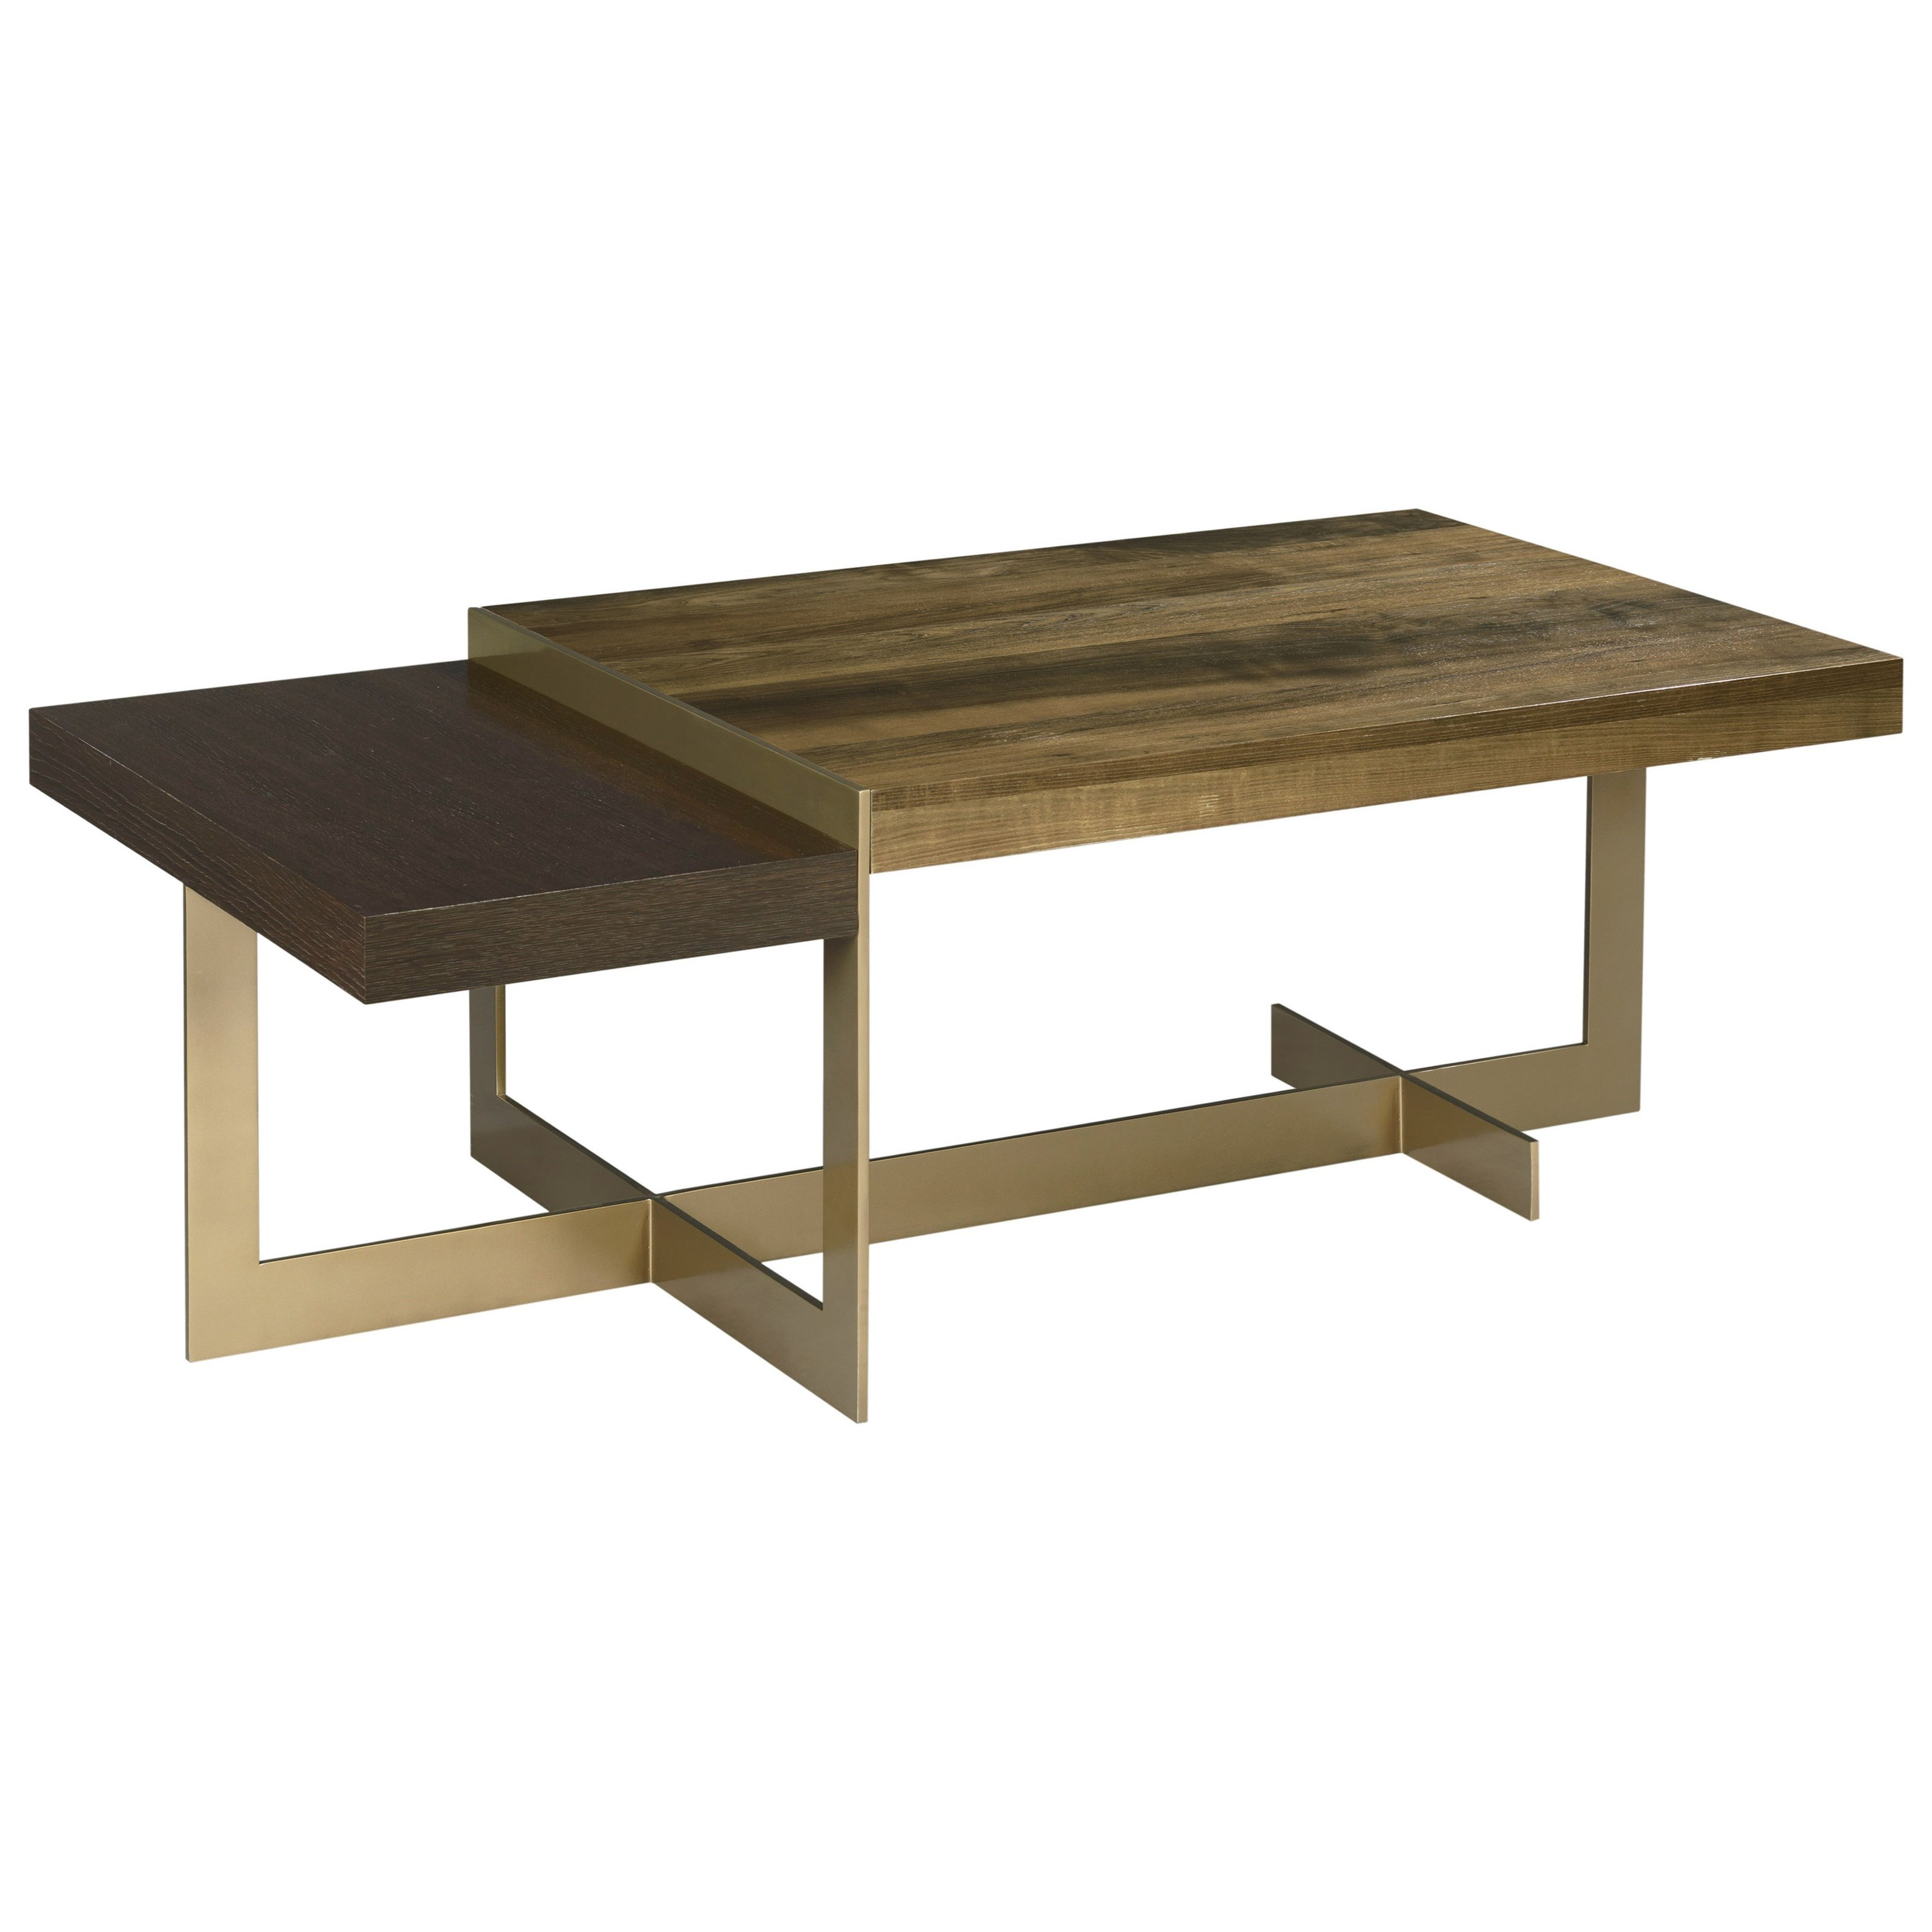 Ad Modern Organics Ogden Rectangular Cocktail Table by American Drew at Suburban Furniture